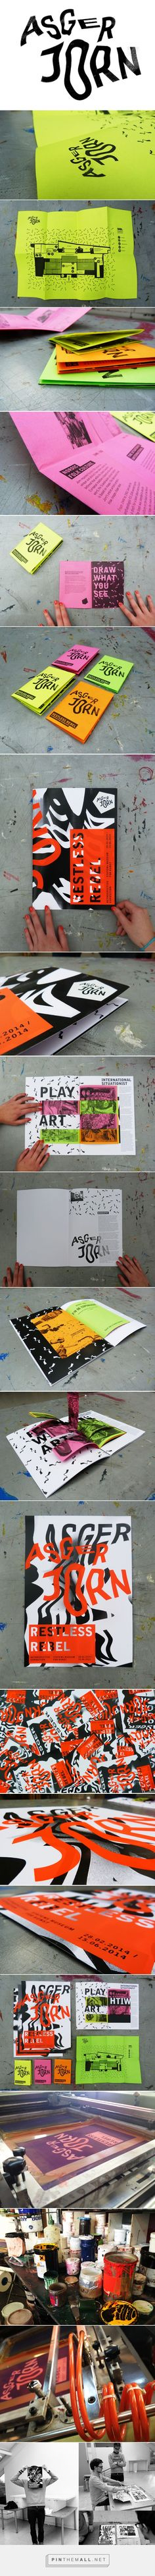 ASGER JORN - Exhibition Identity on Behance... - a grouped images picture - Pin Them All